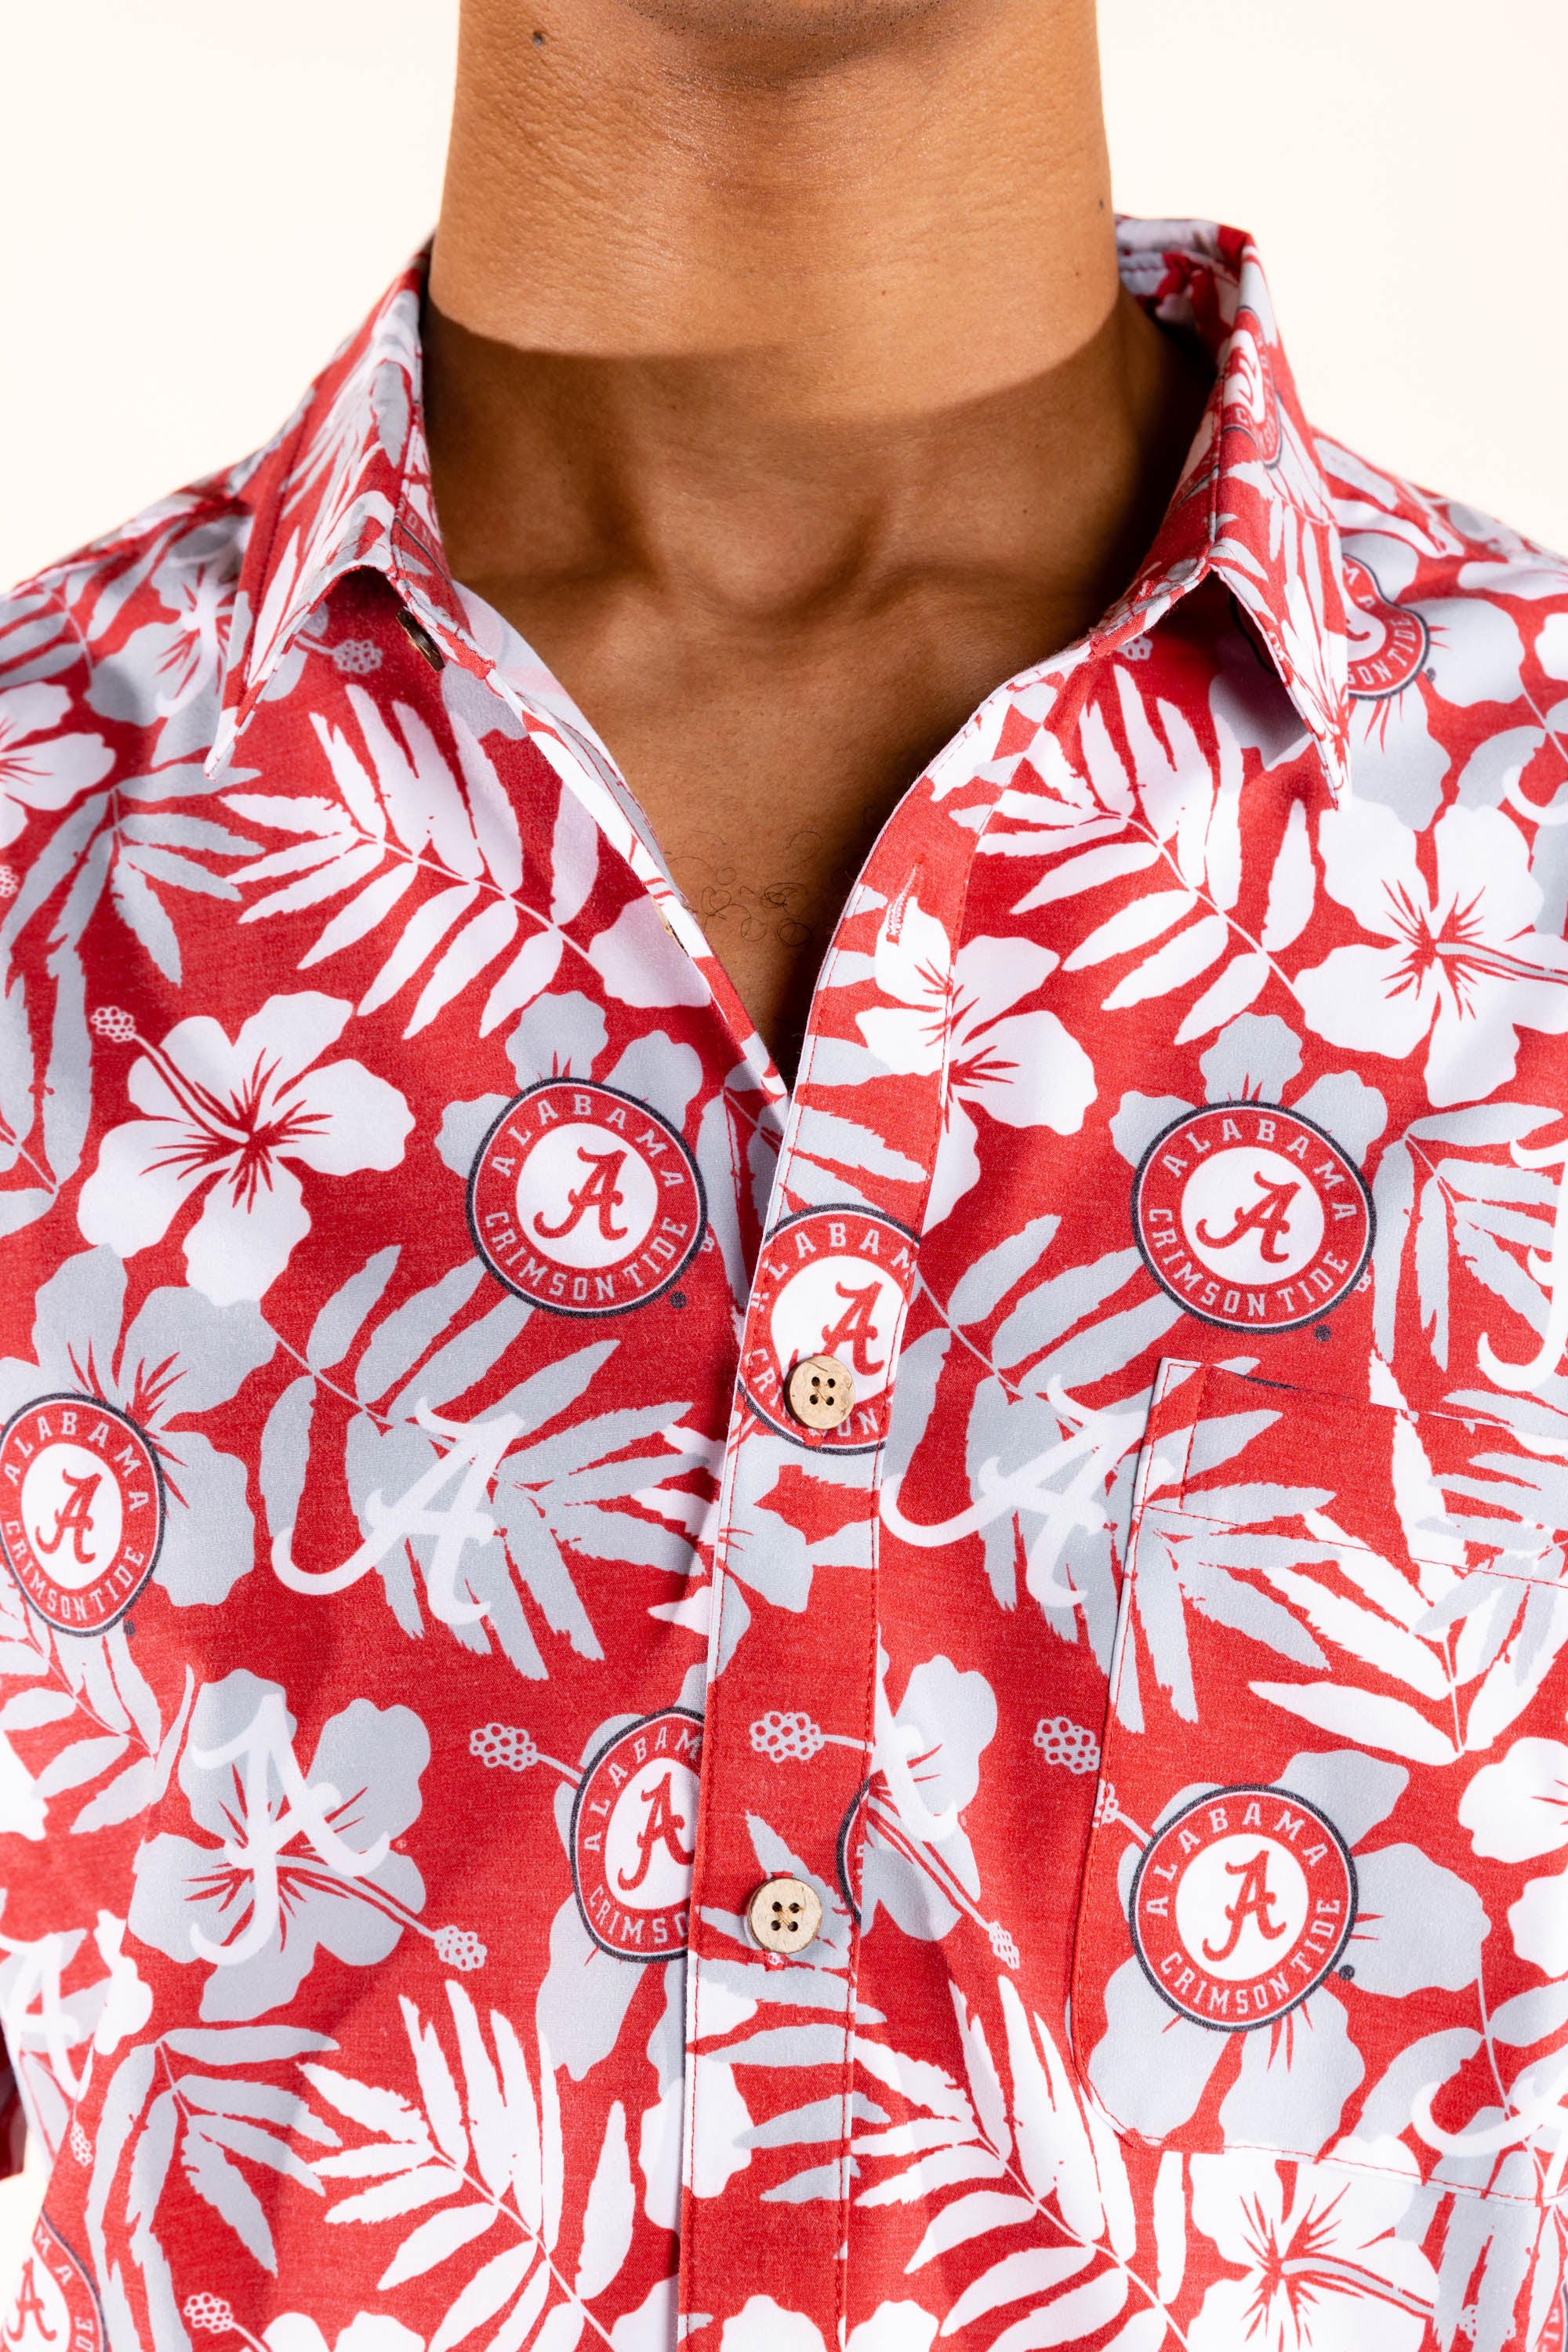 floral alabama hawaiian shirt